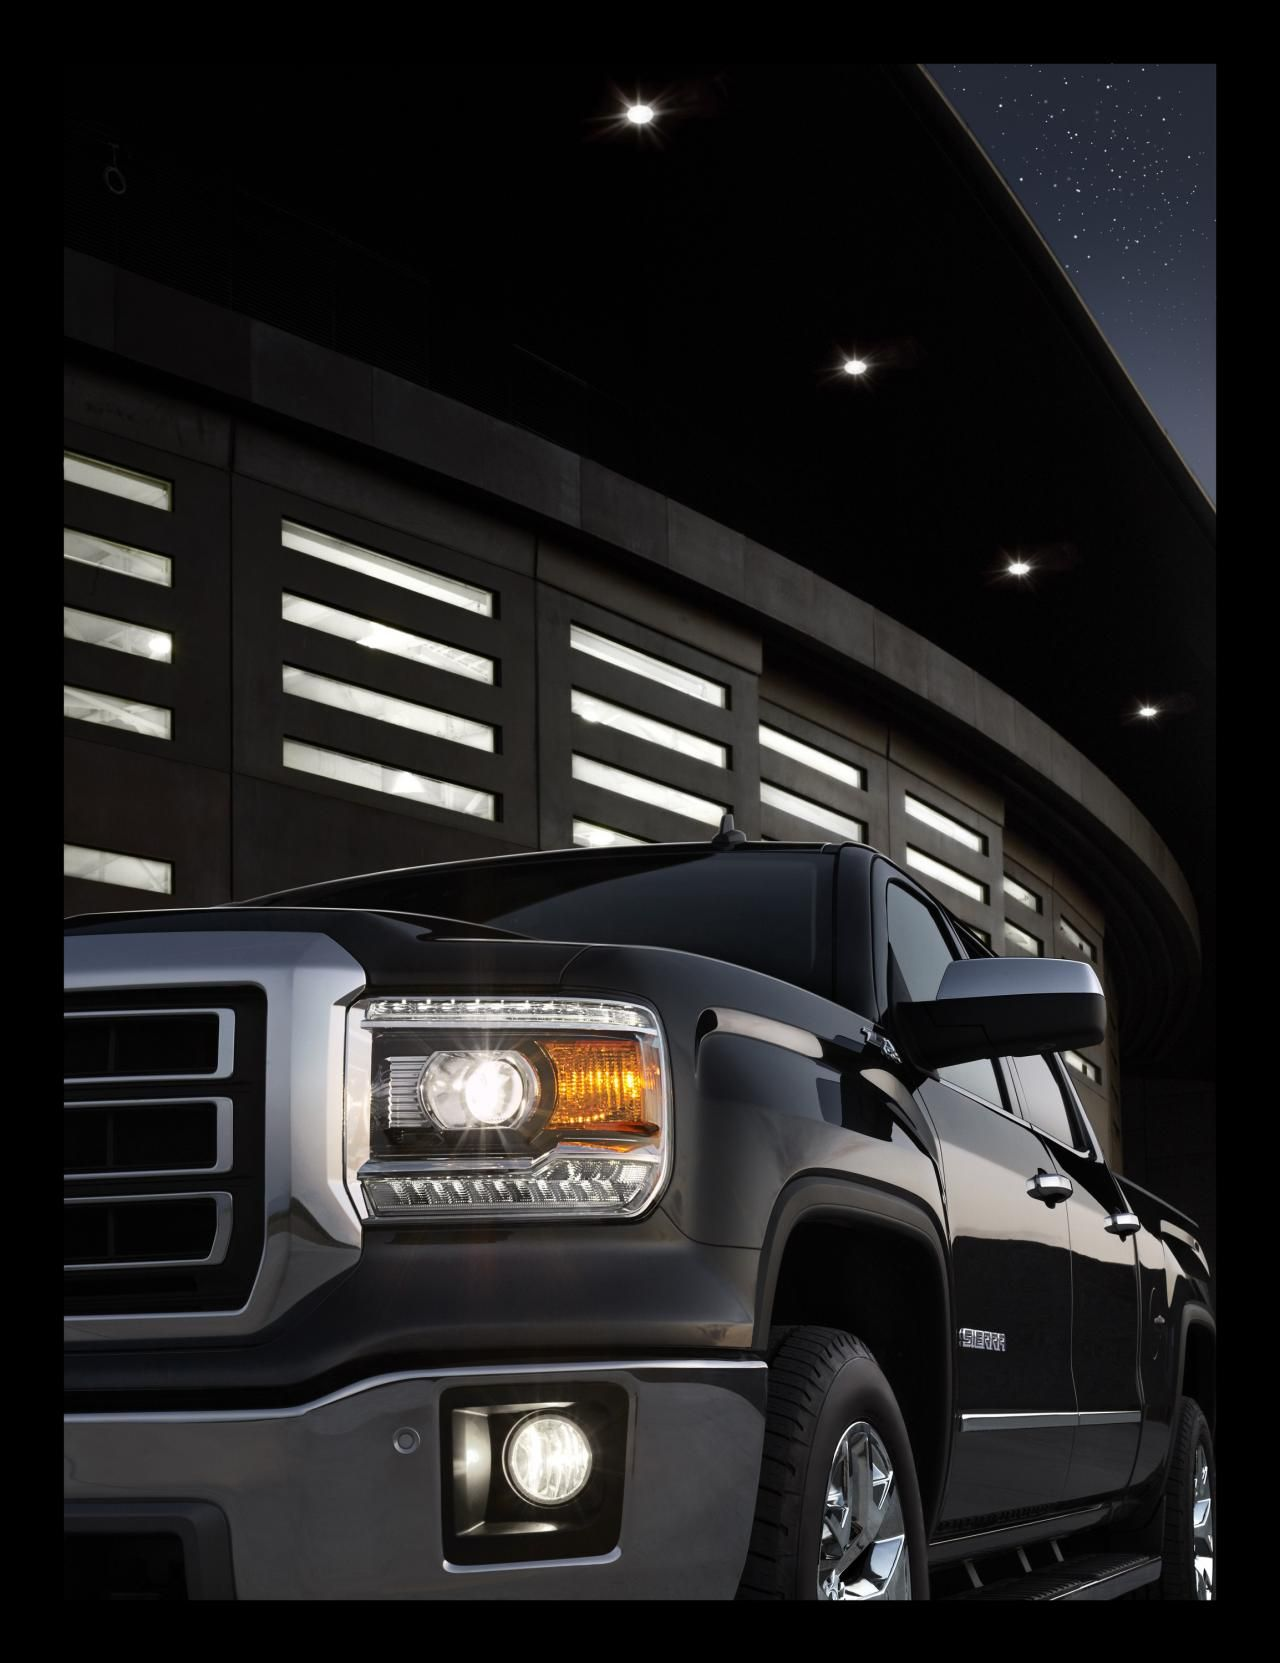 2014 Gmc Sierra Credit Youareapproved Www Carcredittampa Com